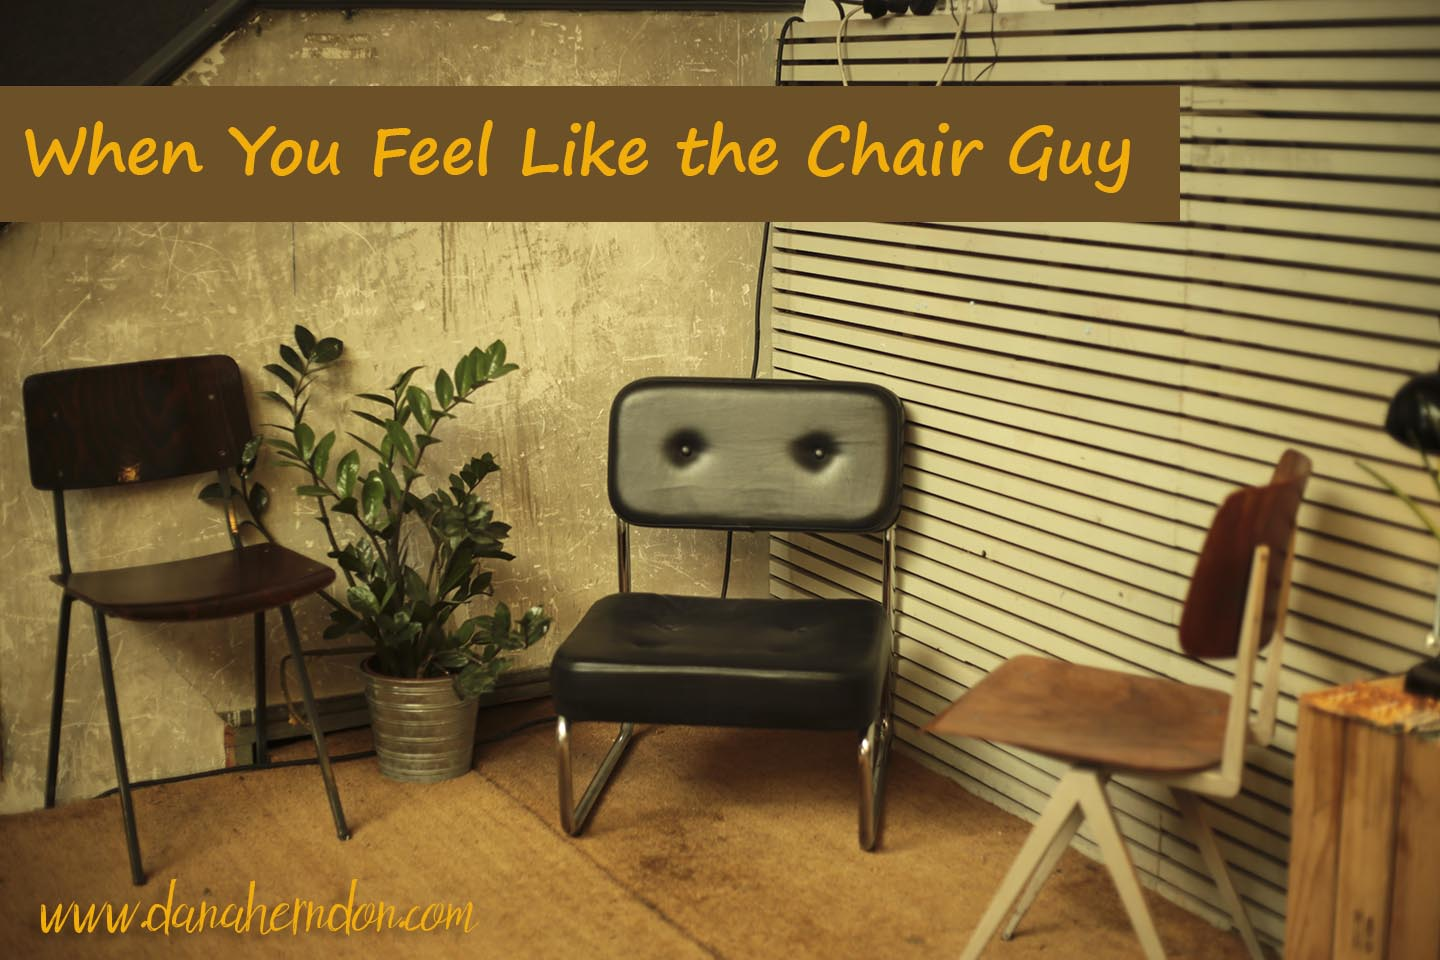 chair guy title